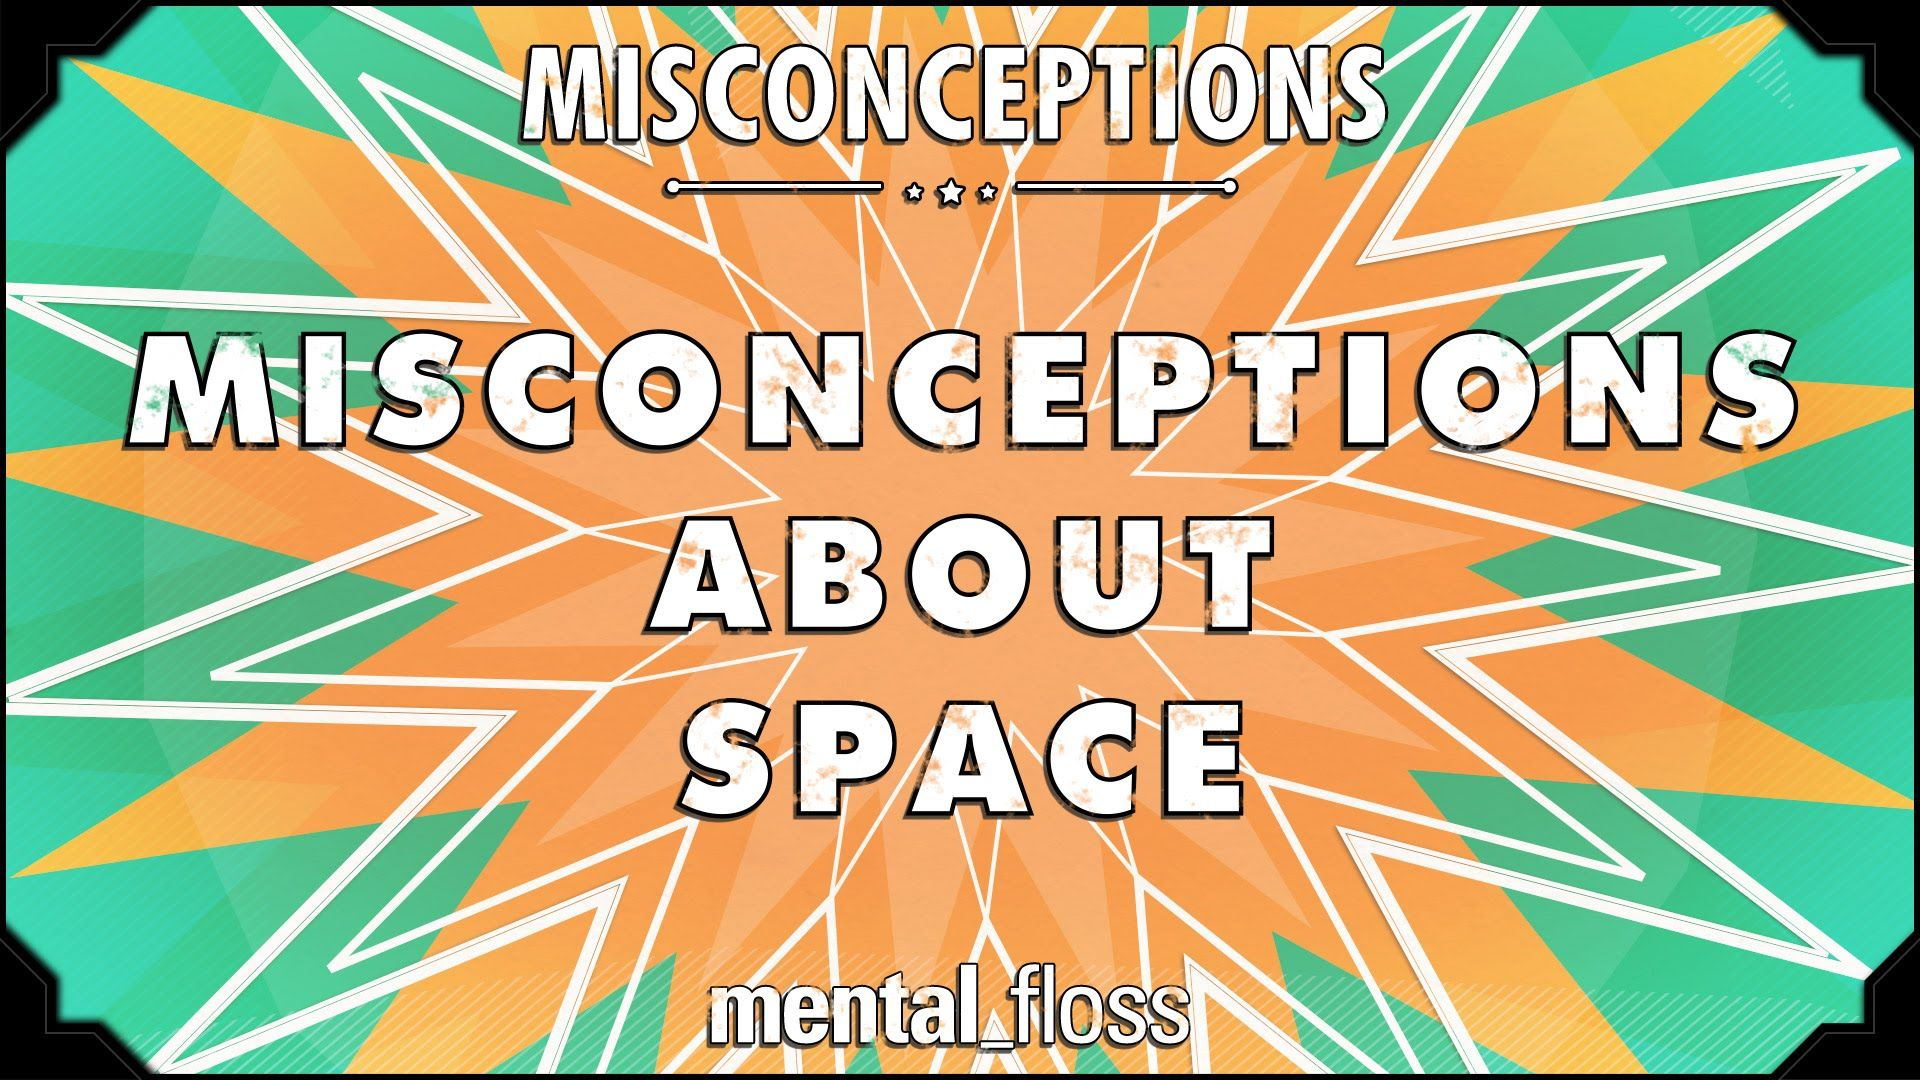 Misconceptions About Space